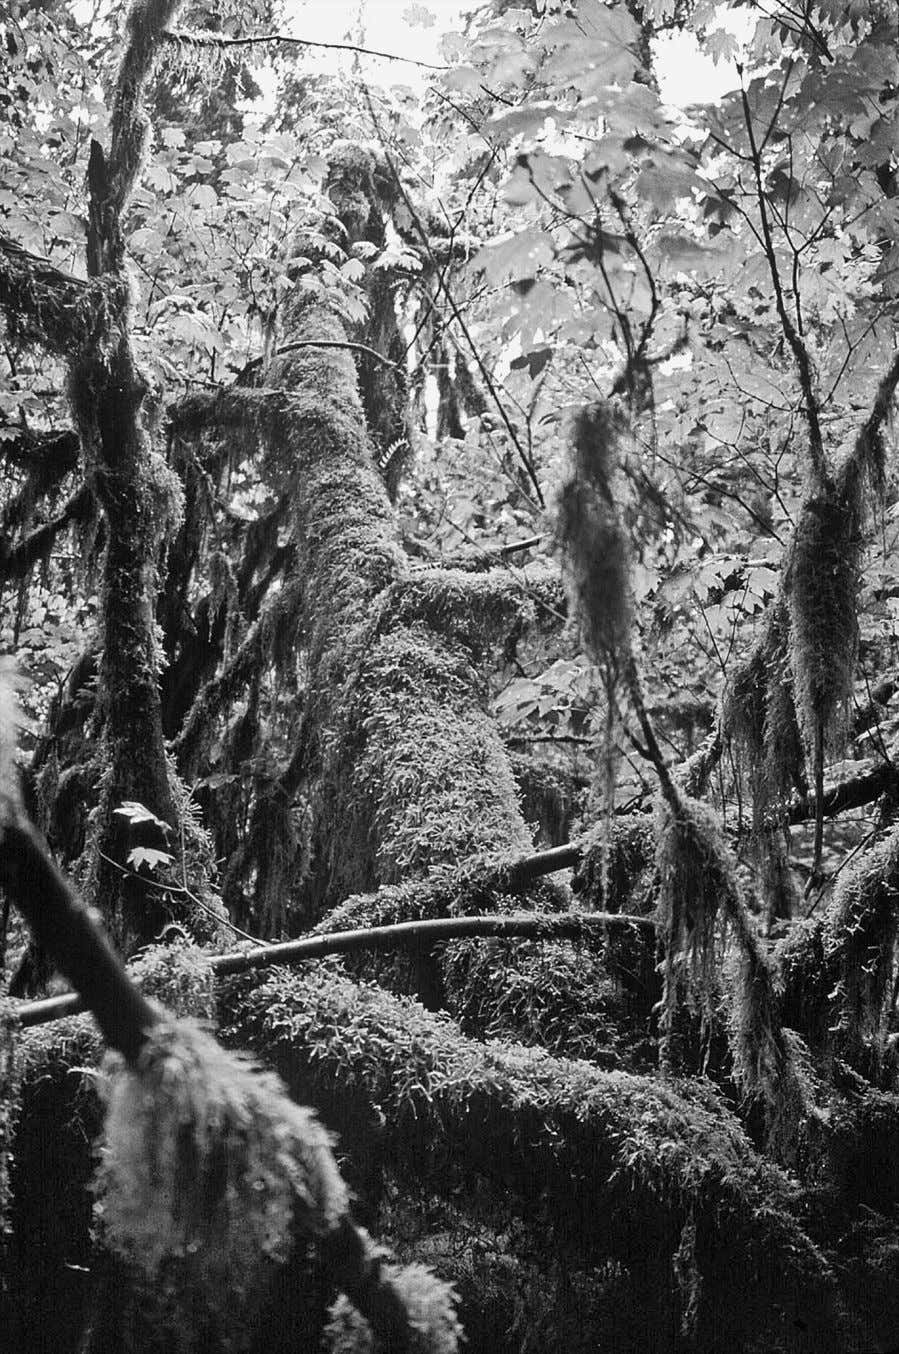 Figure 3.1 Damp habitats such as this temperate rain forest in the Hoh River Valley,